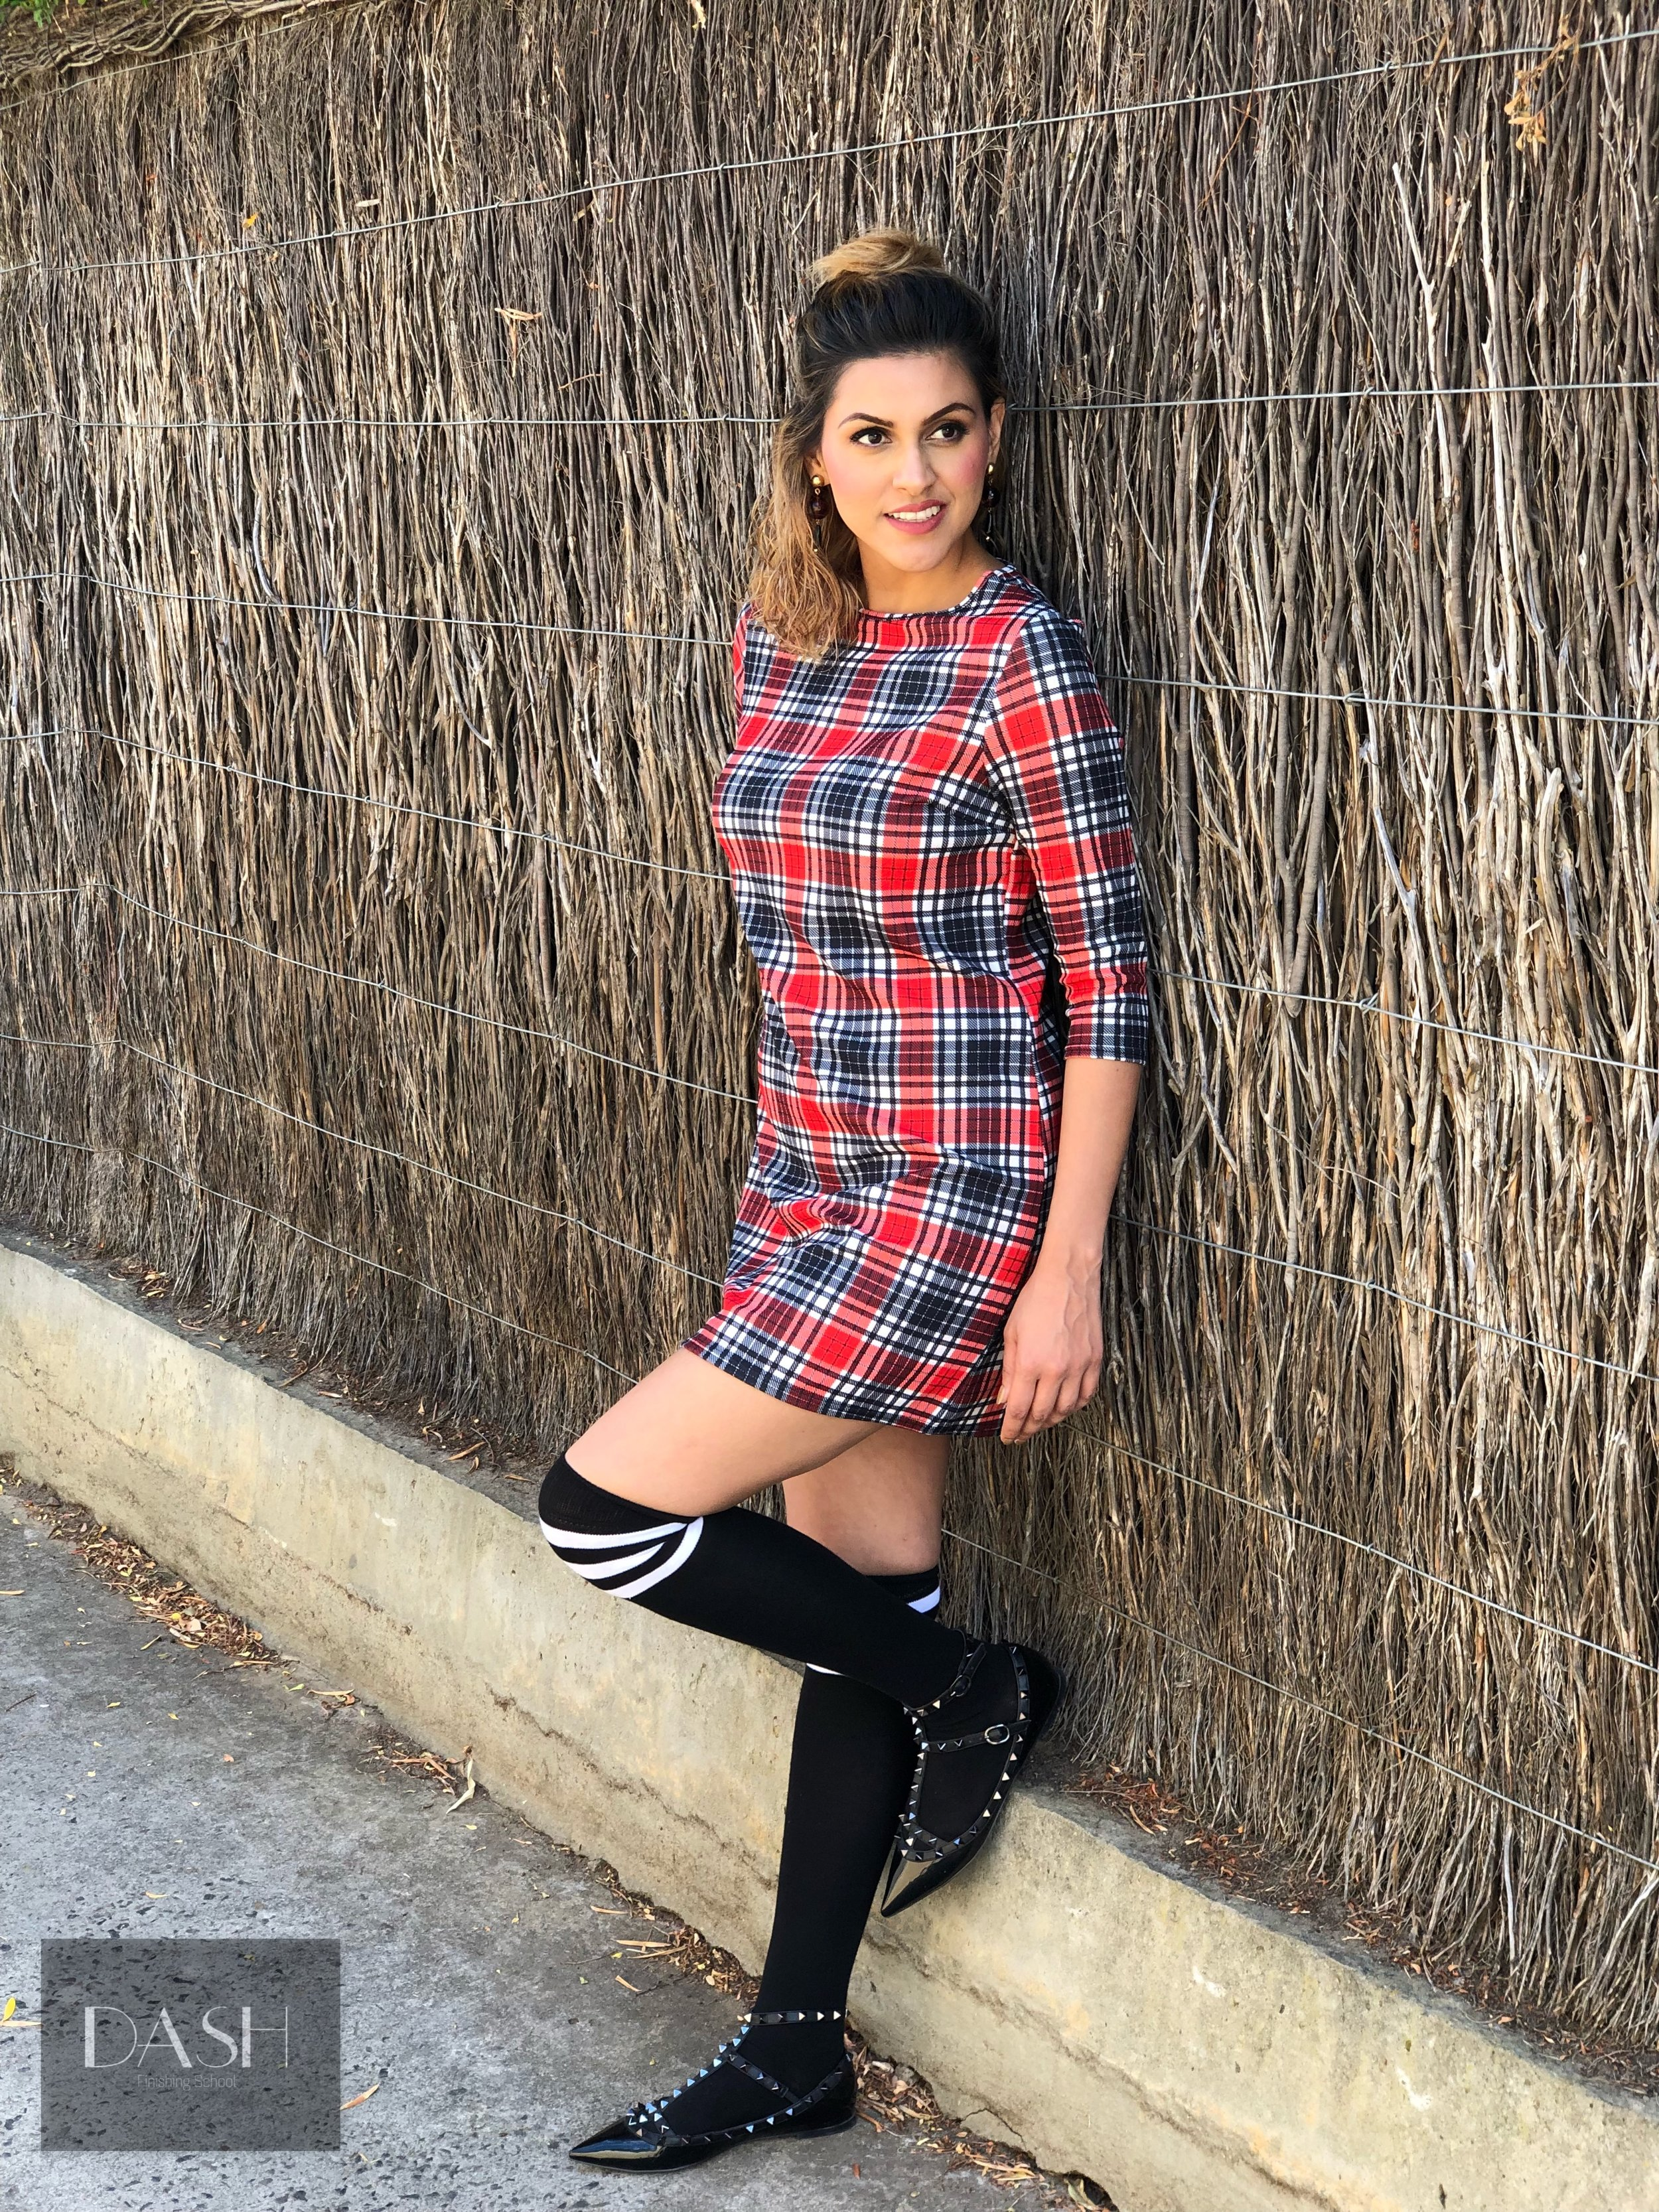 SOCKS: Knee high socks paired with buckle shoes. This look works best with dresses. Alternatively, can also be worked with cigarette pants + a pair of 'interesting' ankle length socks + heels. This look is quite practical too as keeps us warm on those cooler Melbourne days.